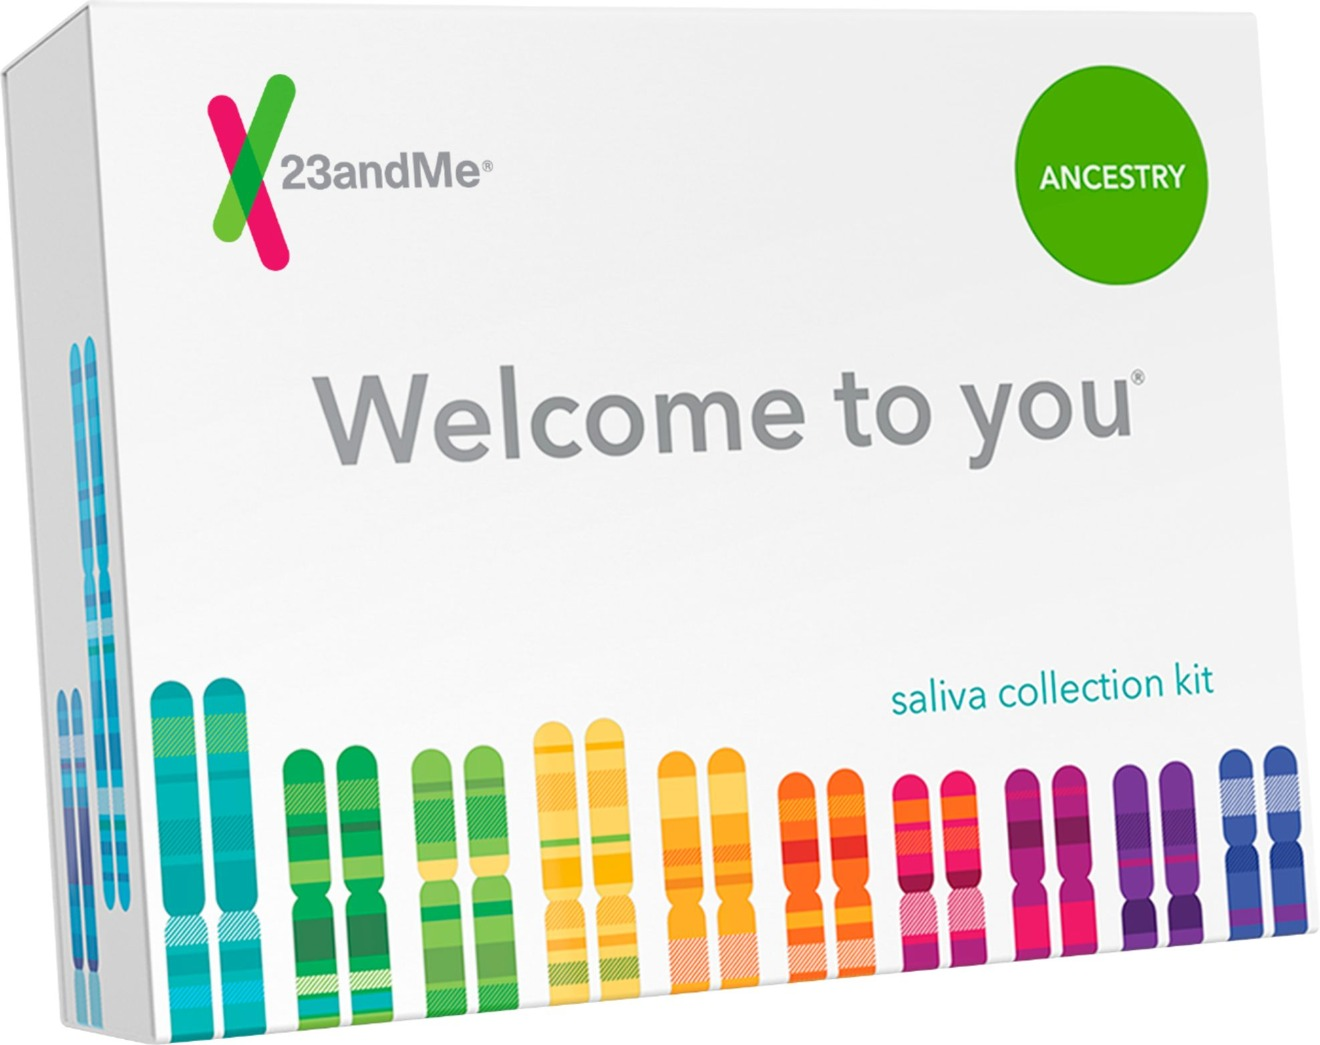 23andMe venturing onto Apple's turf with health data collection